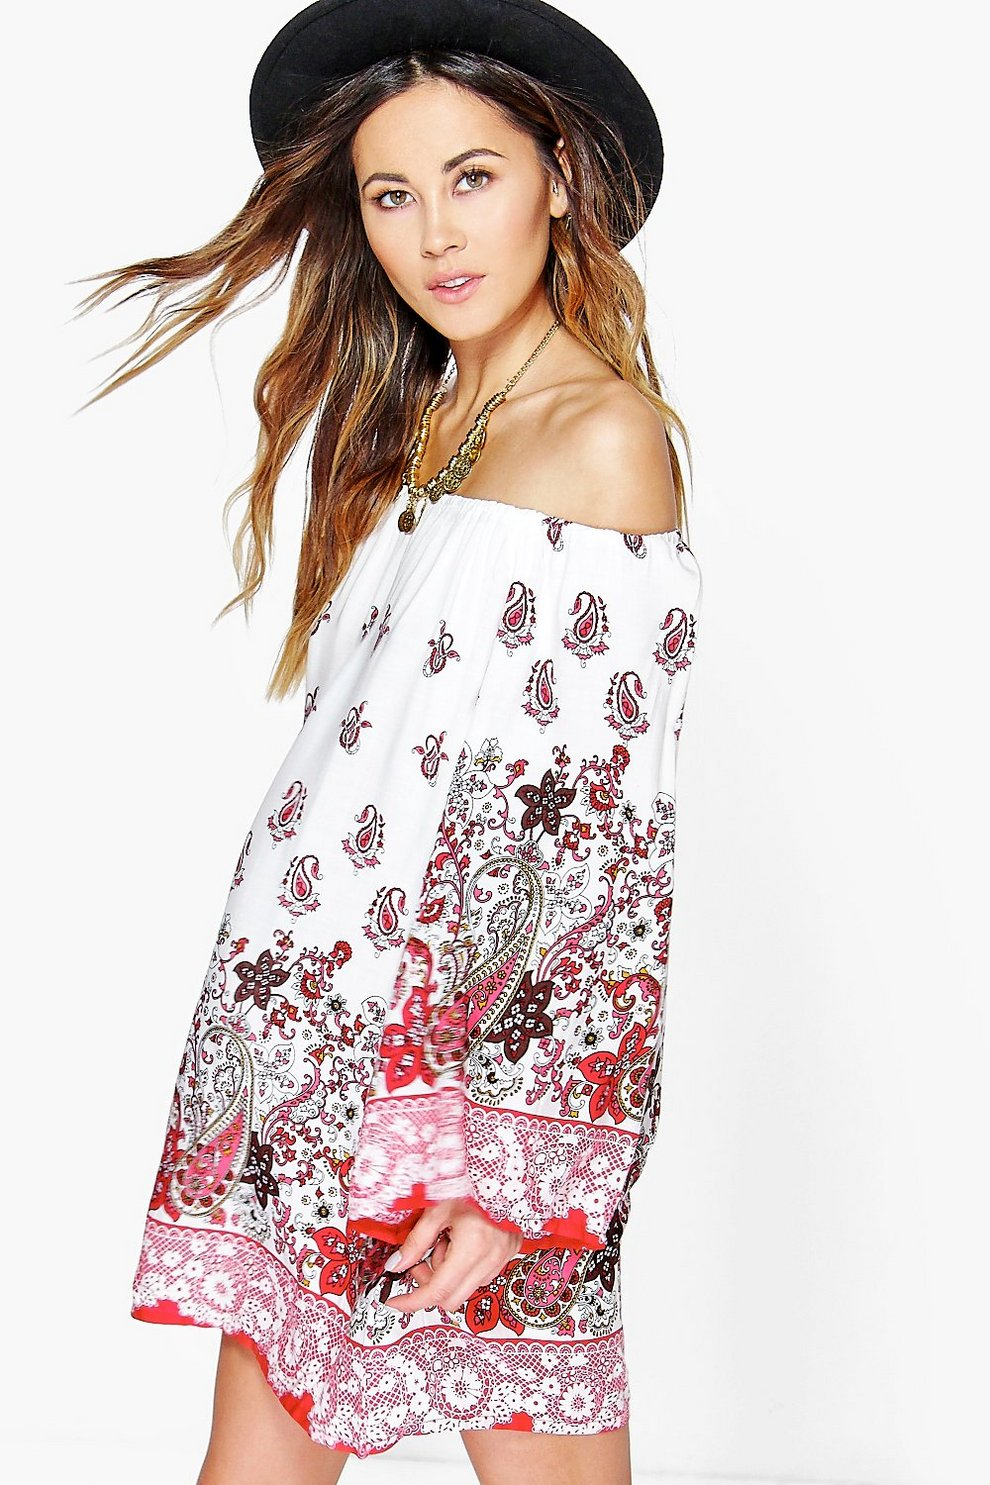 The Festival Lola Shoulder Dress Off vO8Nmwn0